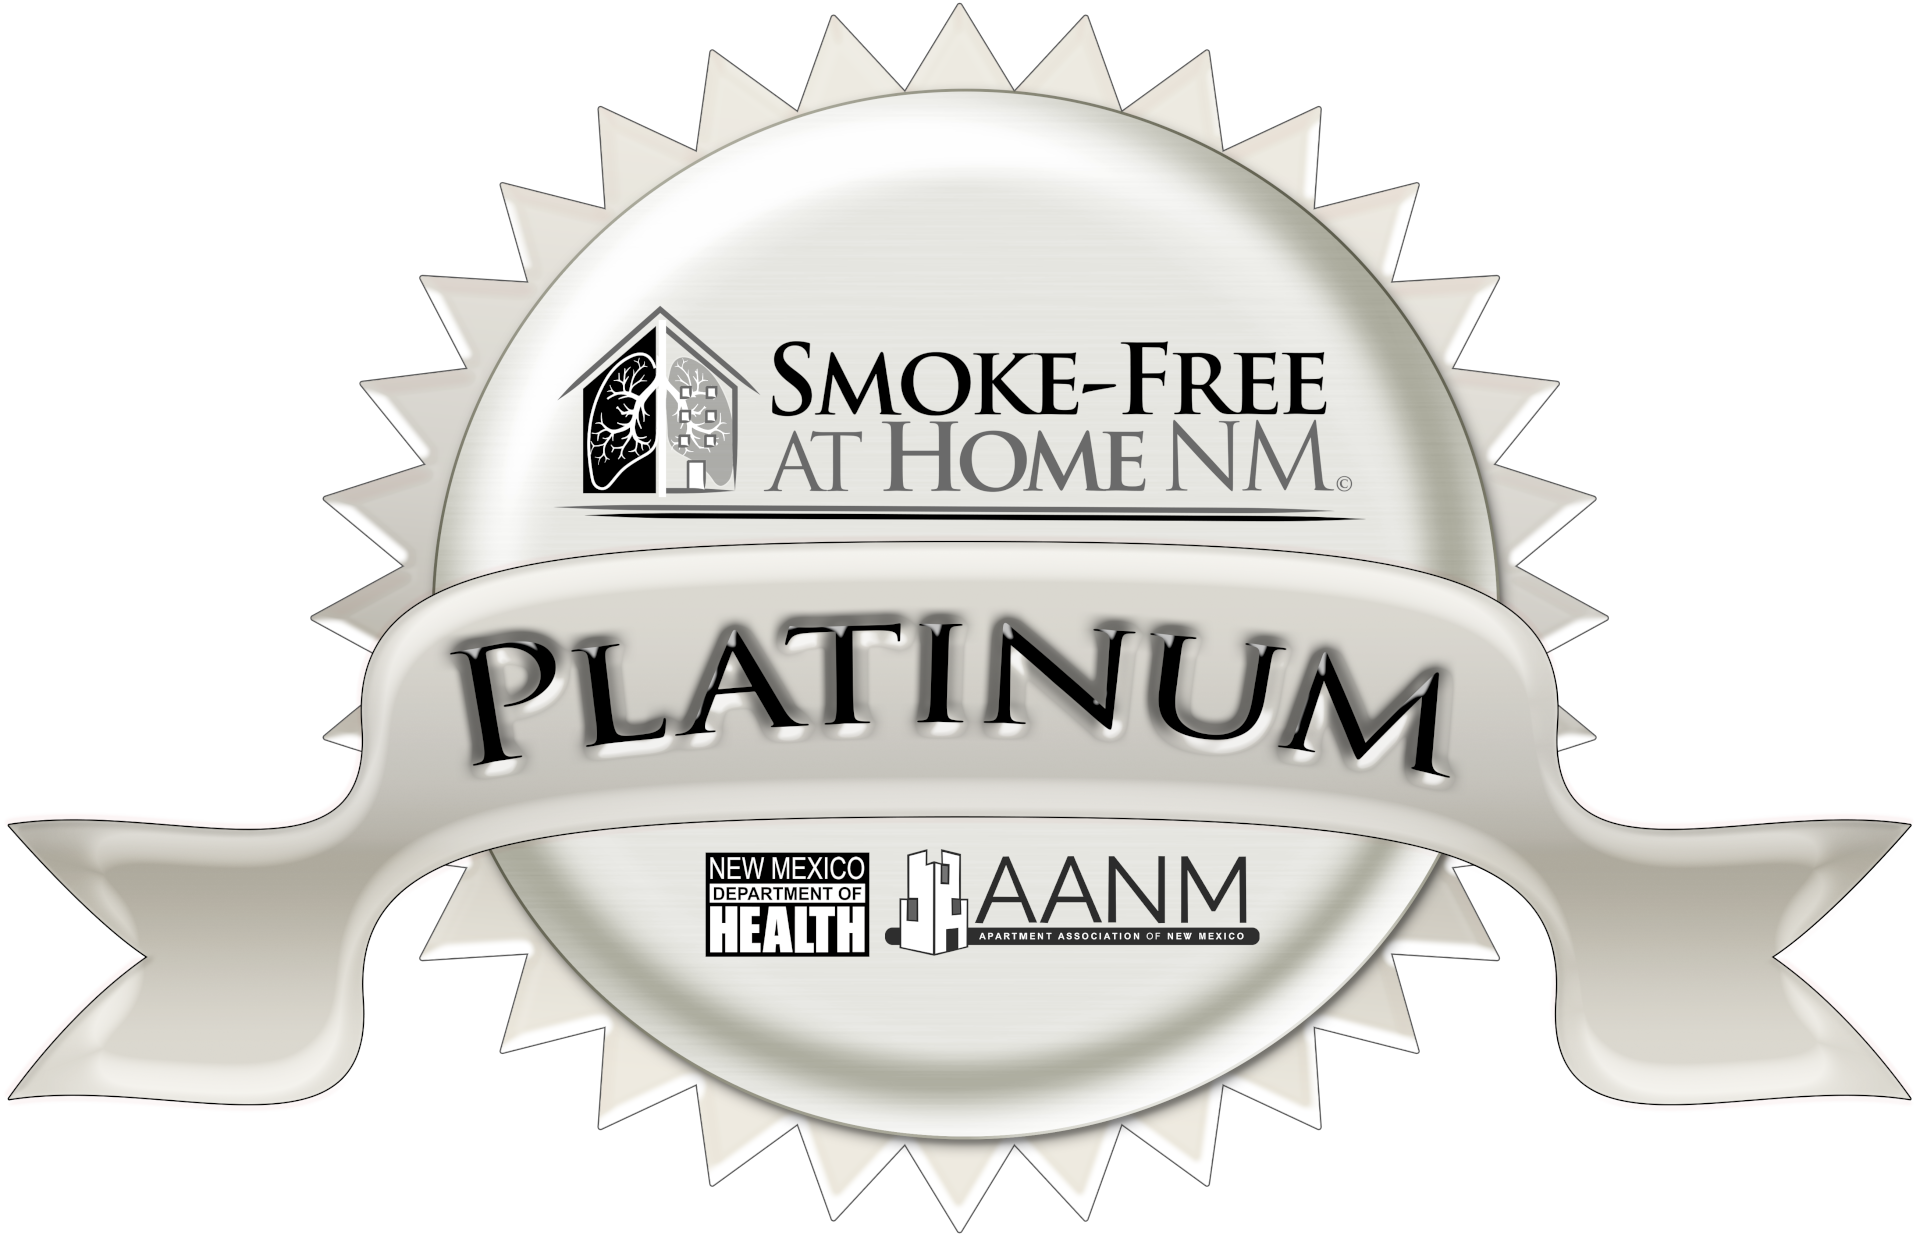 Platinum: A new Property or Development that does not allow any smoking, including electronic cigarettes, on any part of the property at any time.